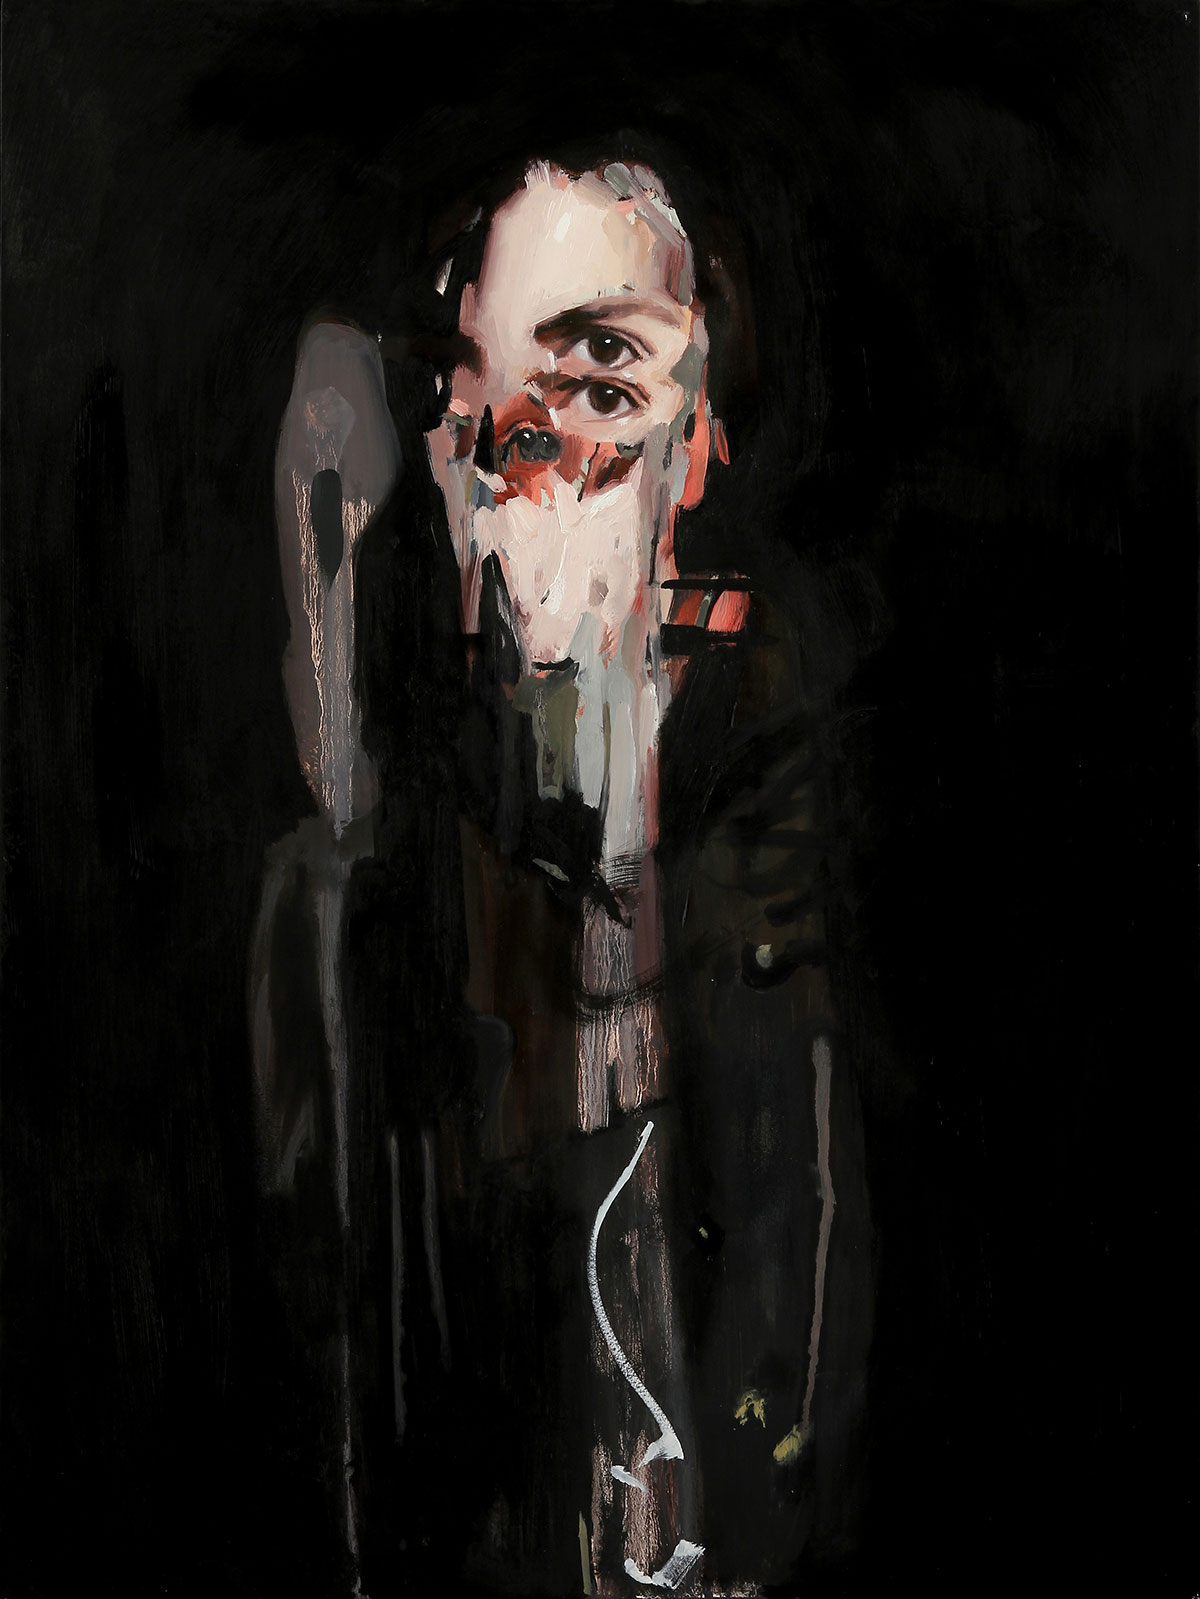 Emilio Villalba, Pinned Ghost, 18x24, oil on wood, 2017